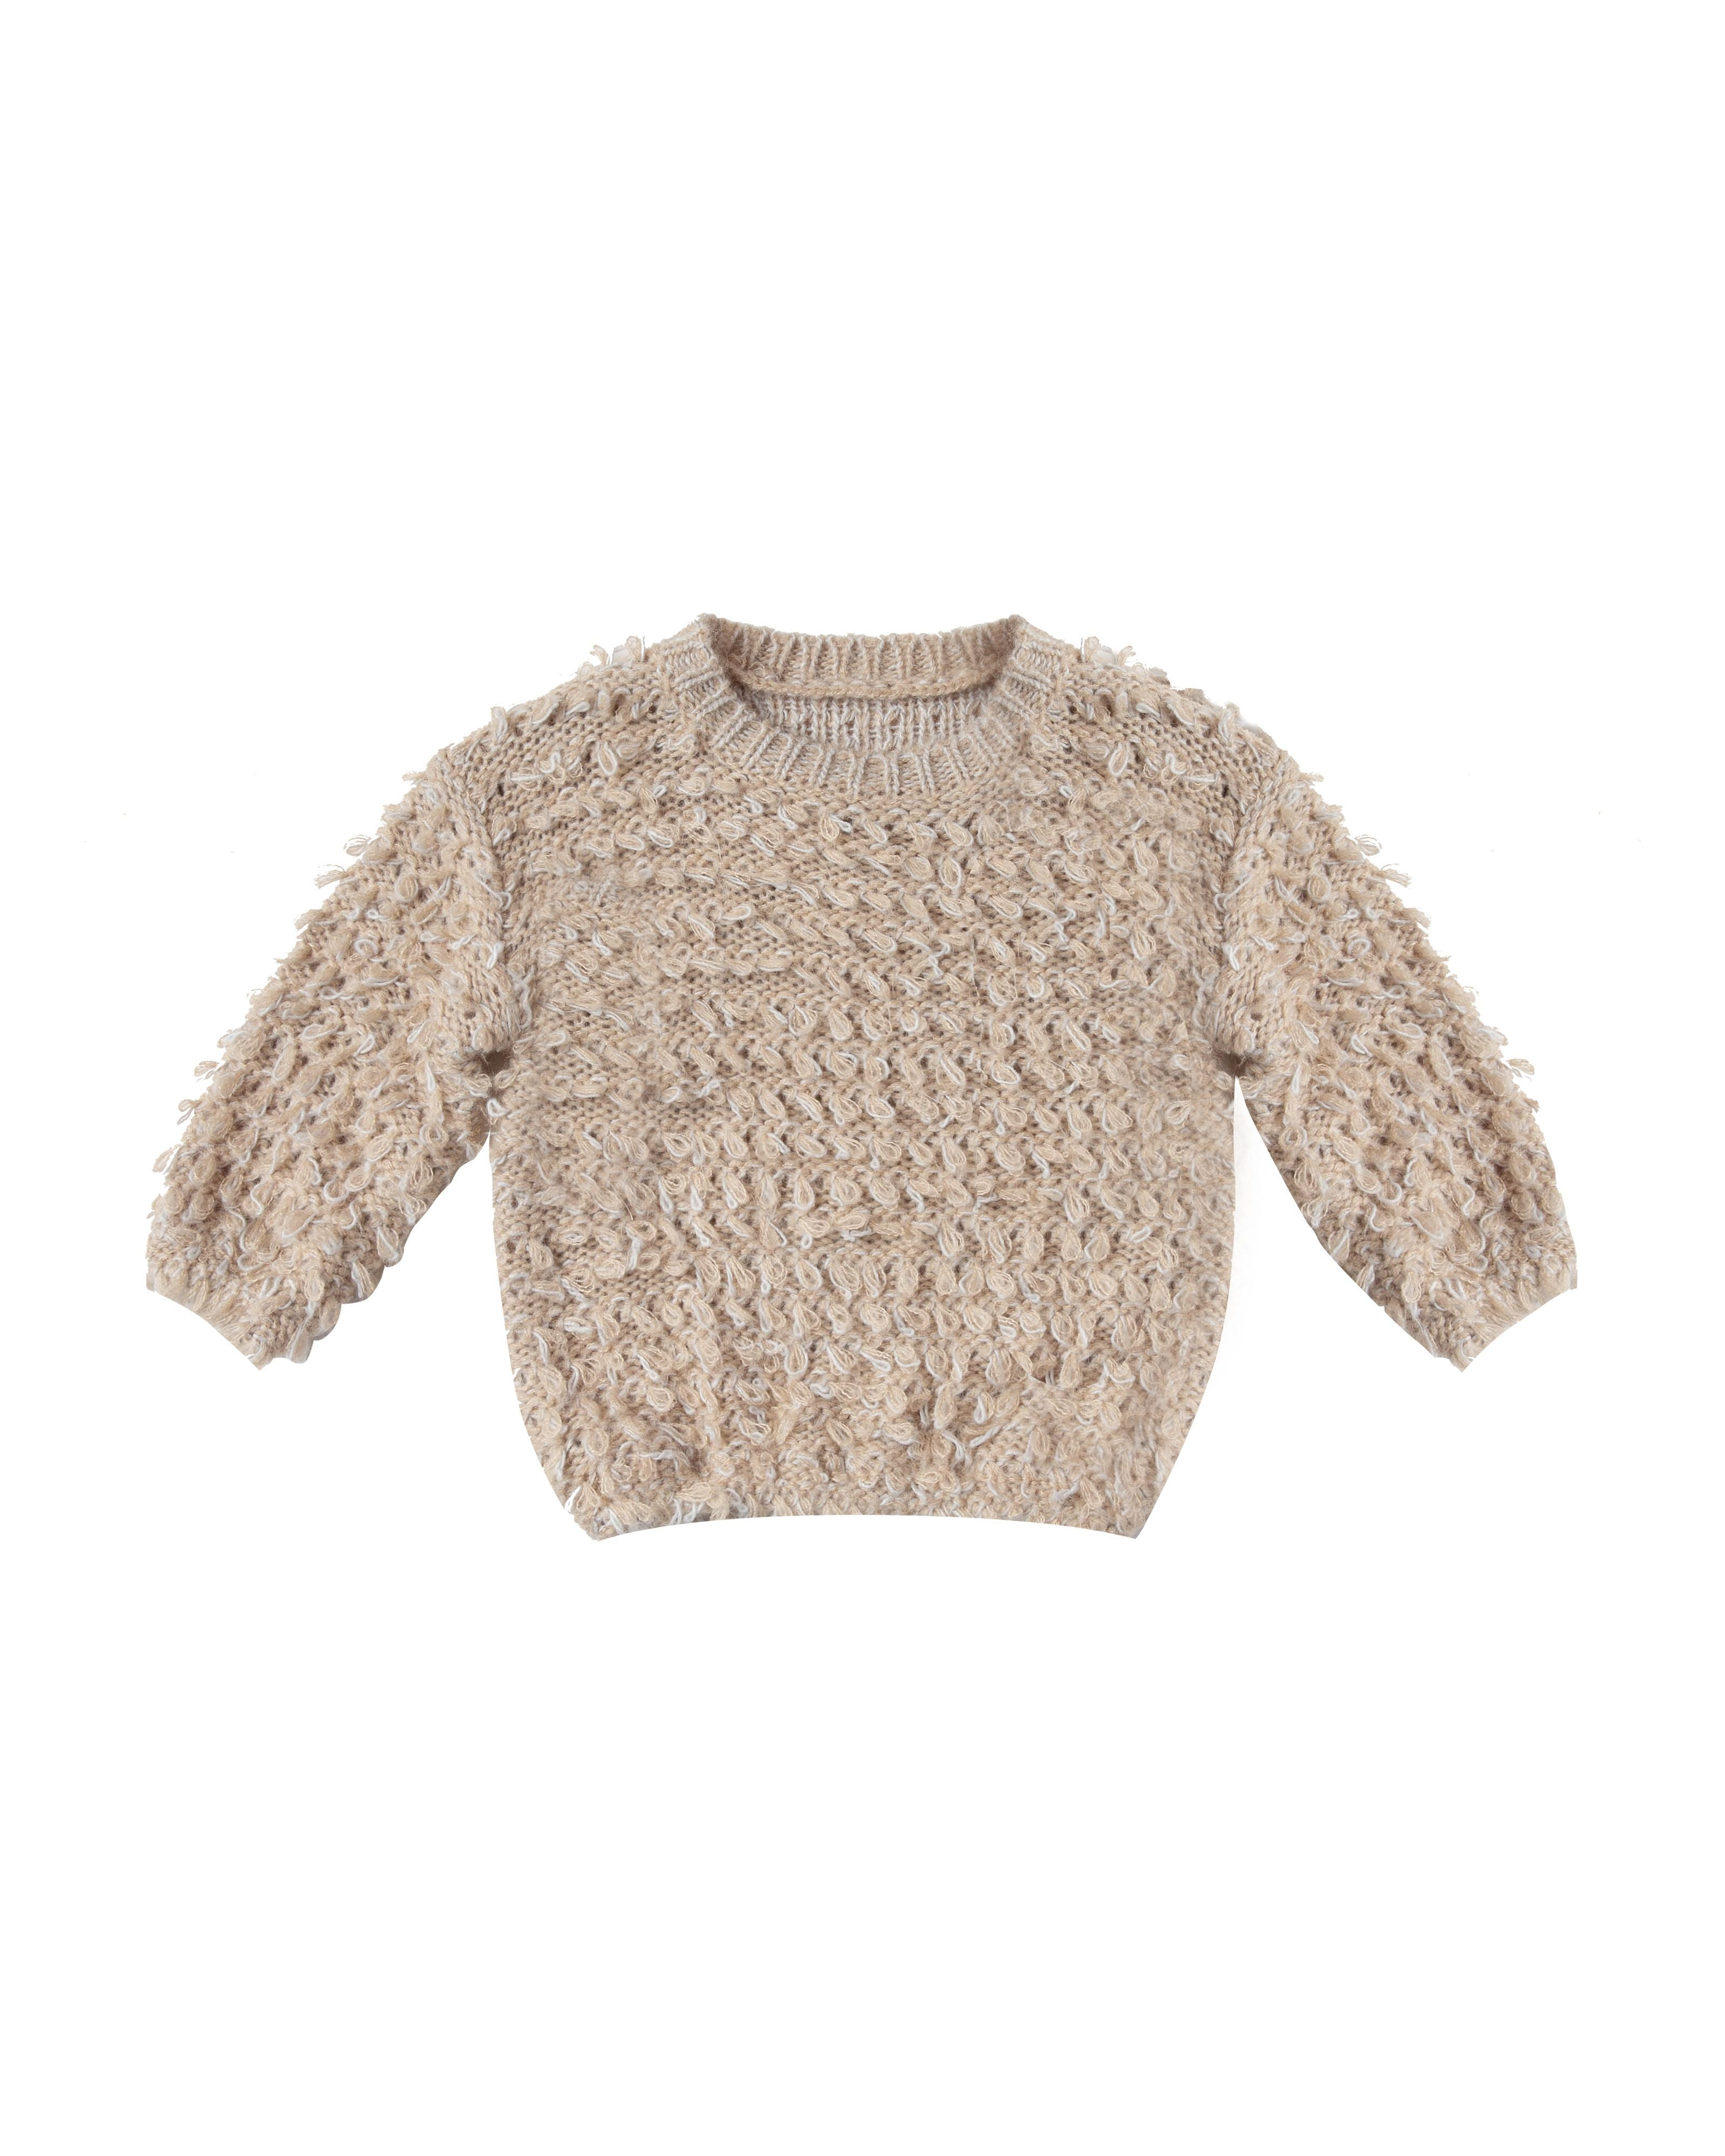 Load image into Gallery viewer, Rylee & Cru Slouchy Pullover Sweater - Oat